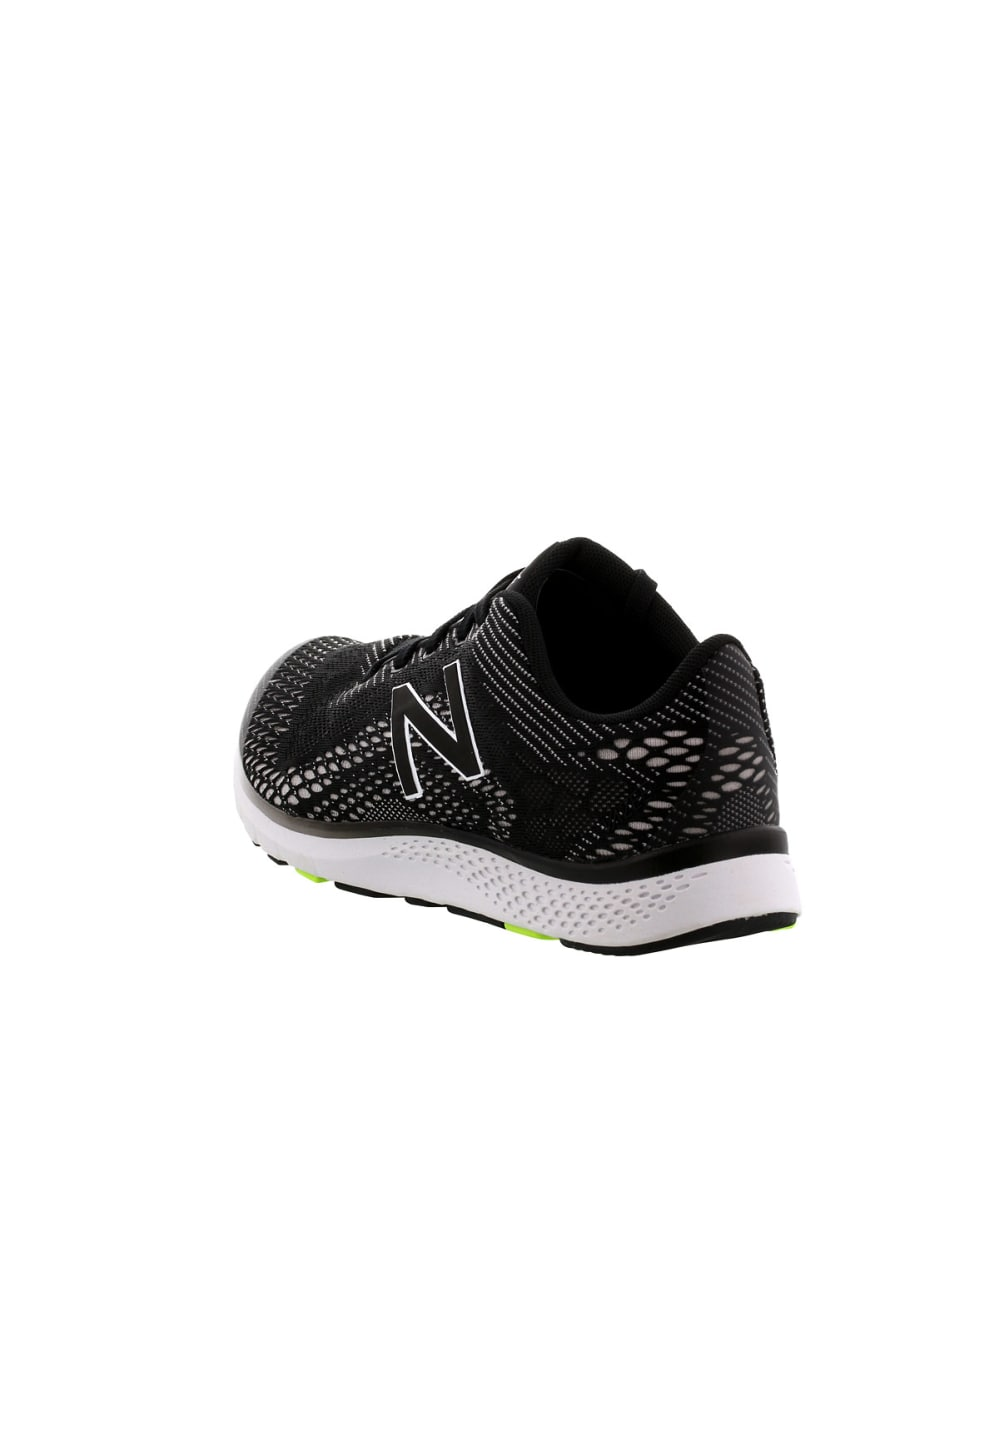 a2965c46db5 Previous. Next. -60%. New Balance. Vazee Agility V2 - Chaussures fitness  pour Femme